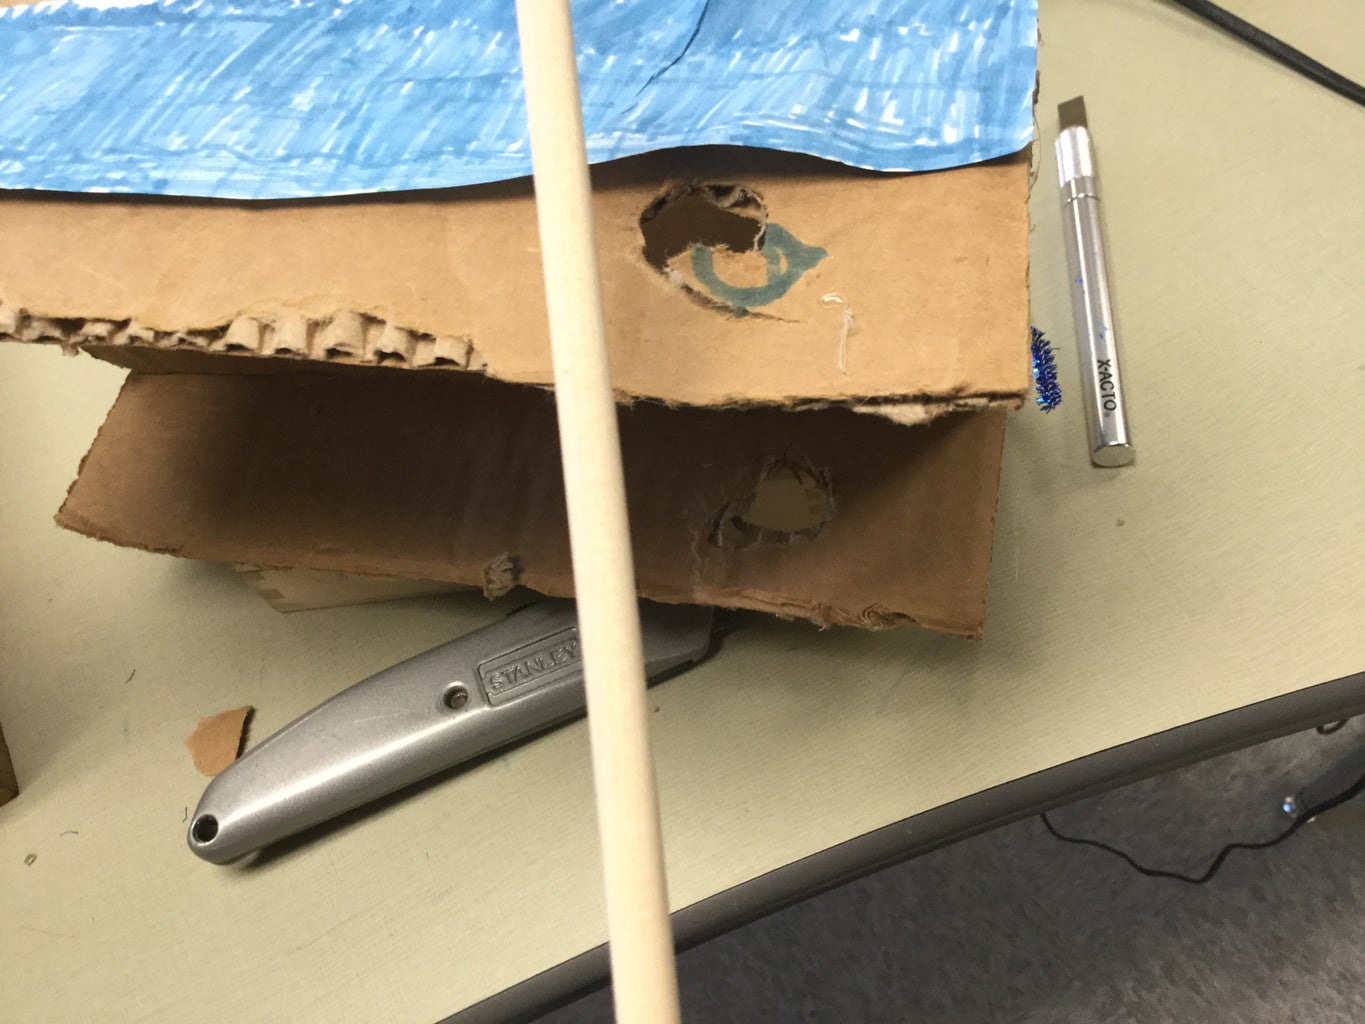 Body of the Mousetrap Car and Trident